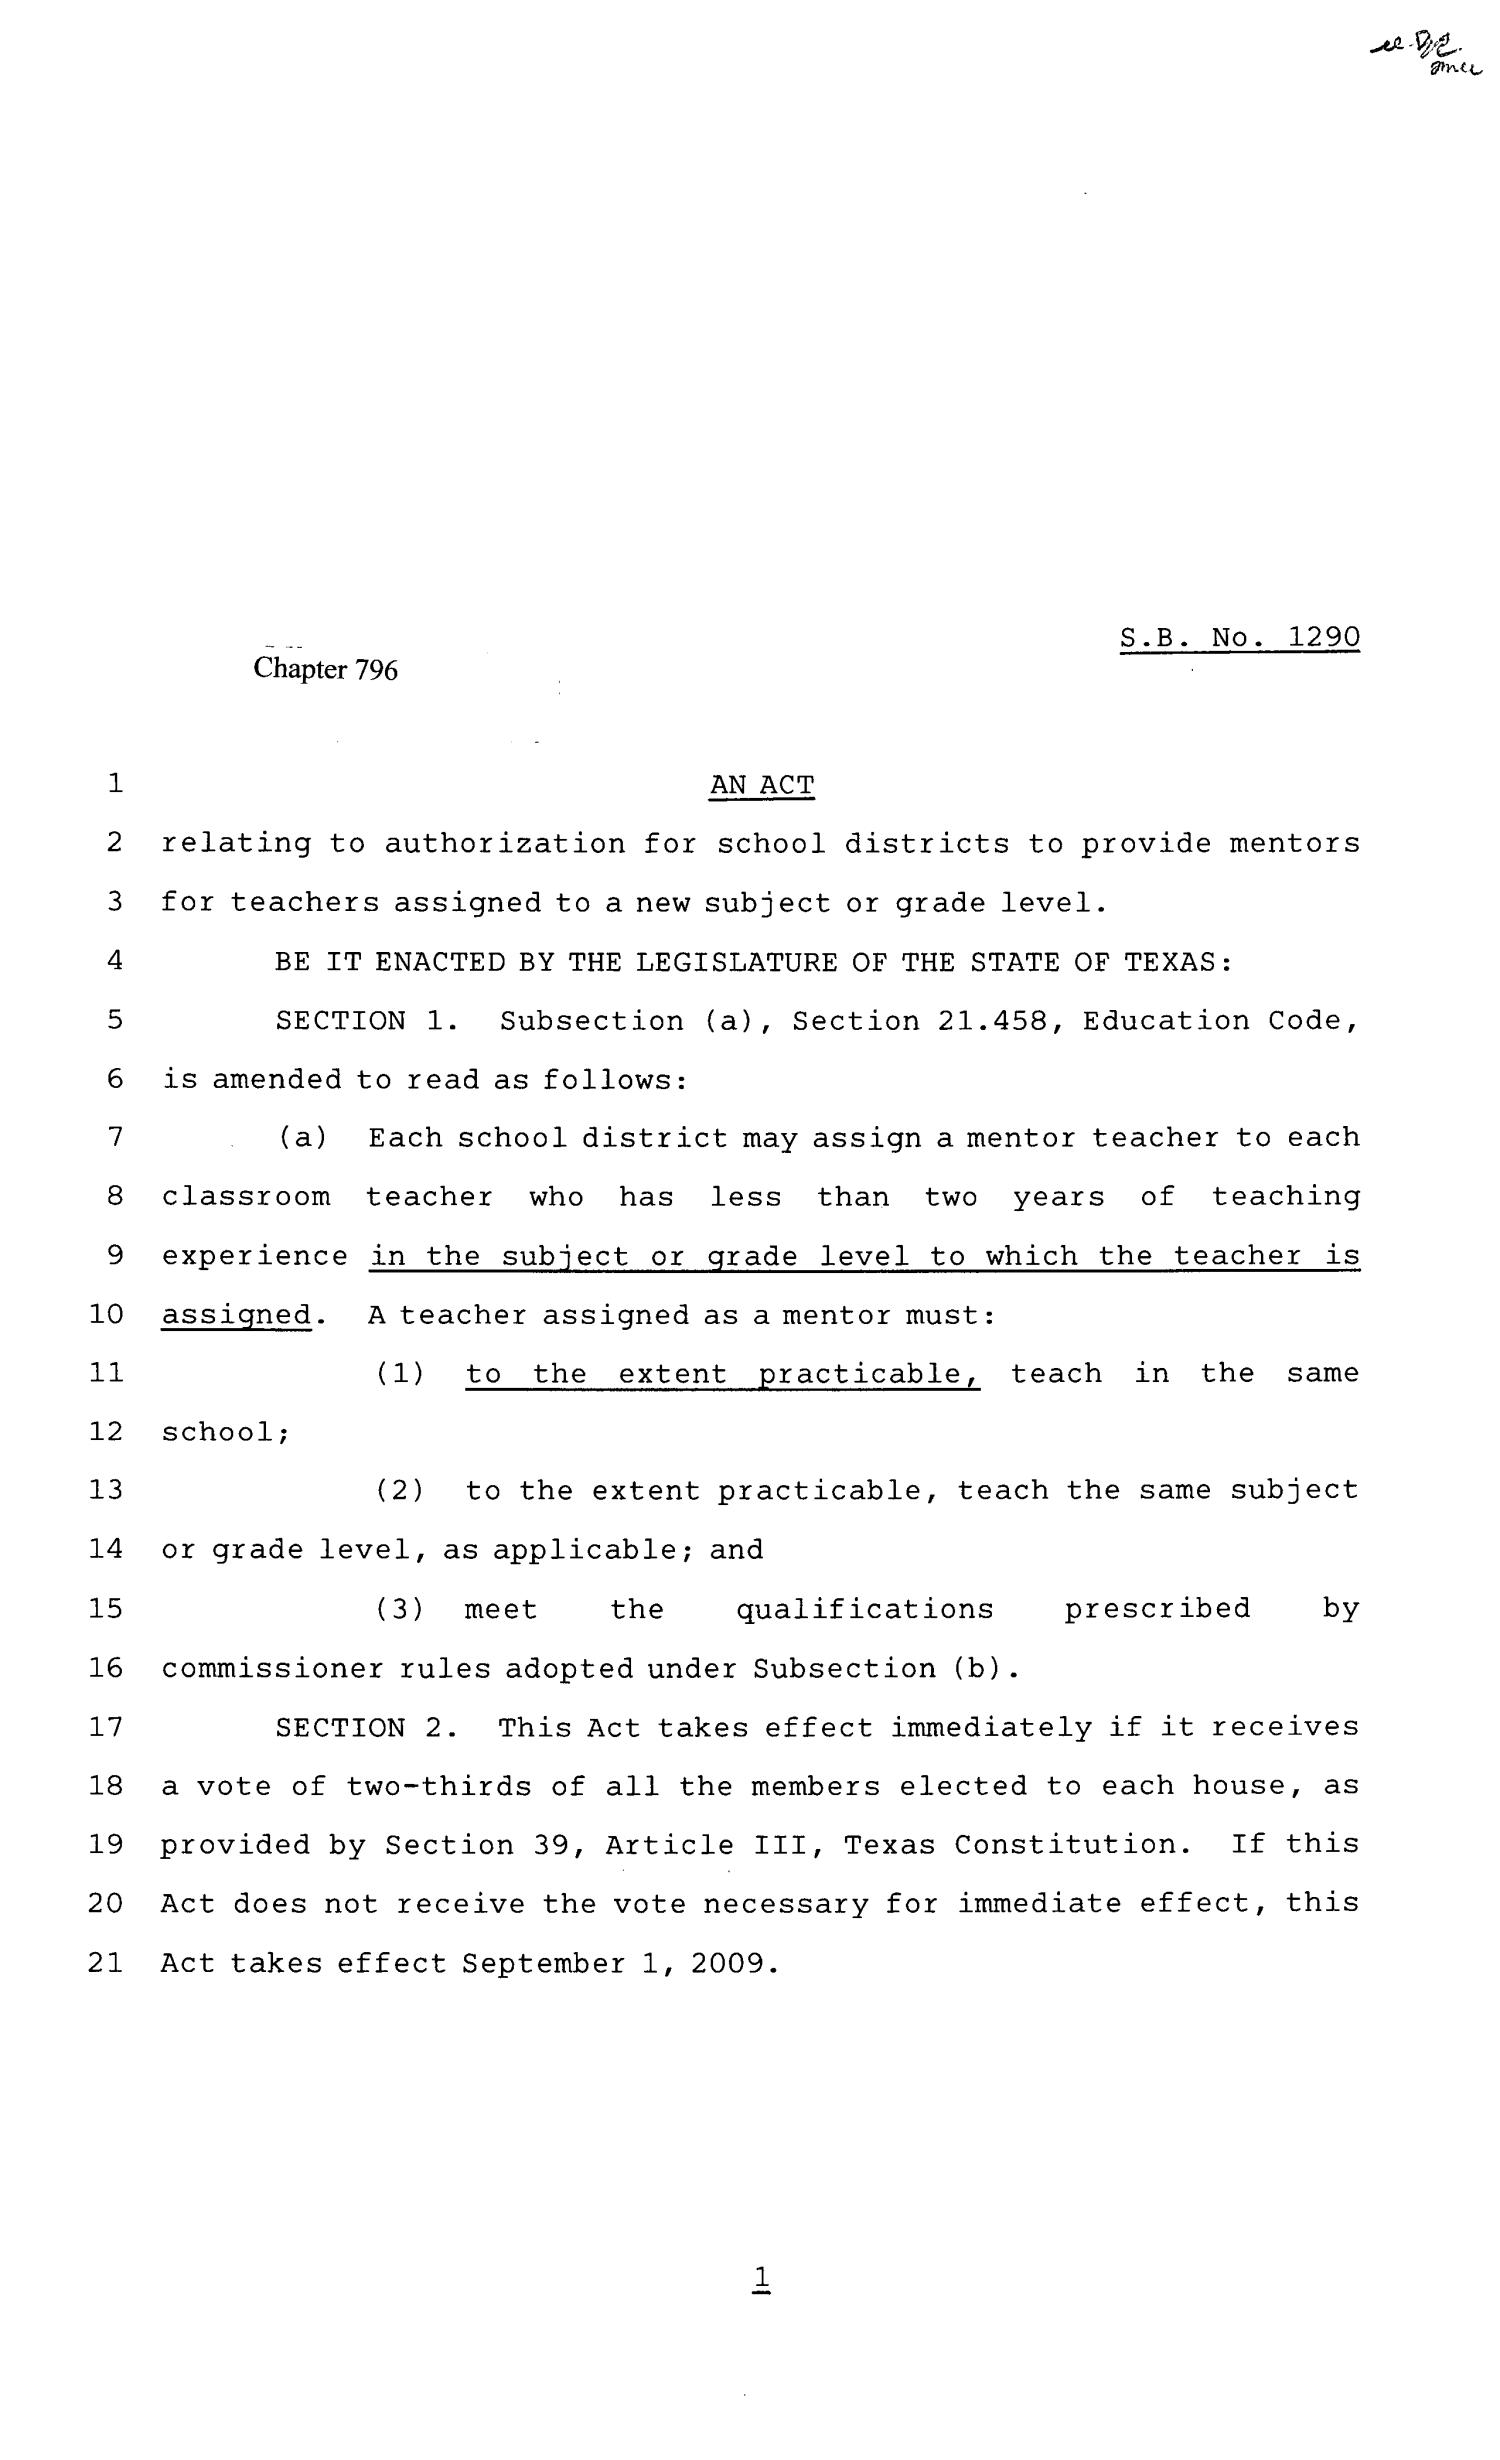 81st Texas Legislature, Senate Bill 1290, Chapter 796                                                                                                      [Sequence #]: 1 of 2